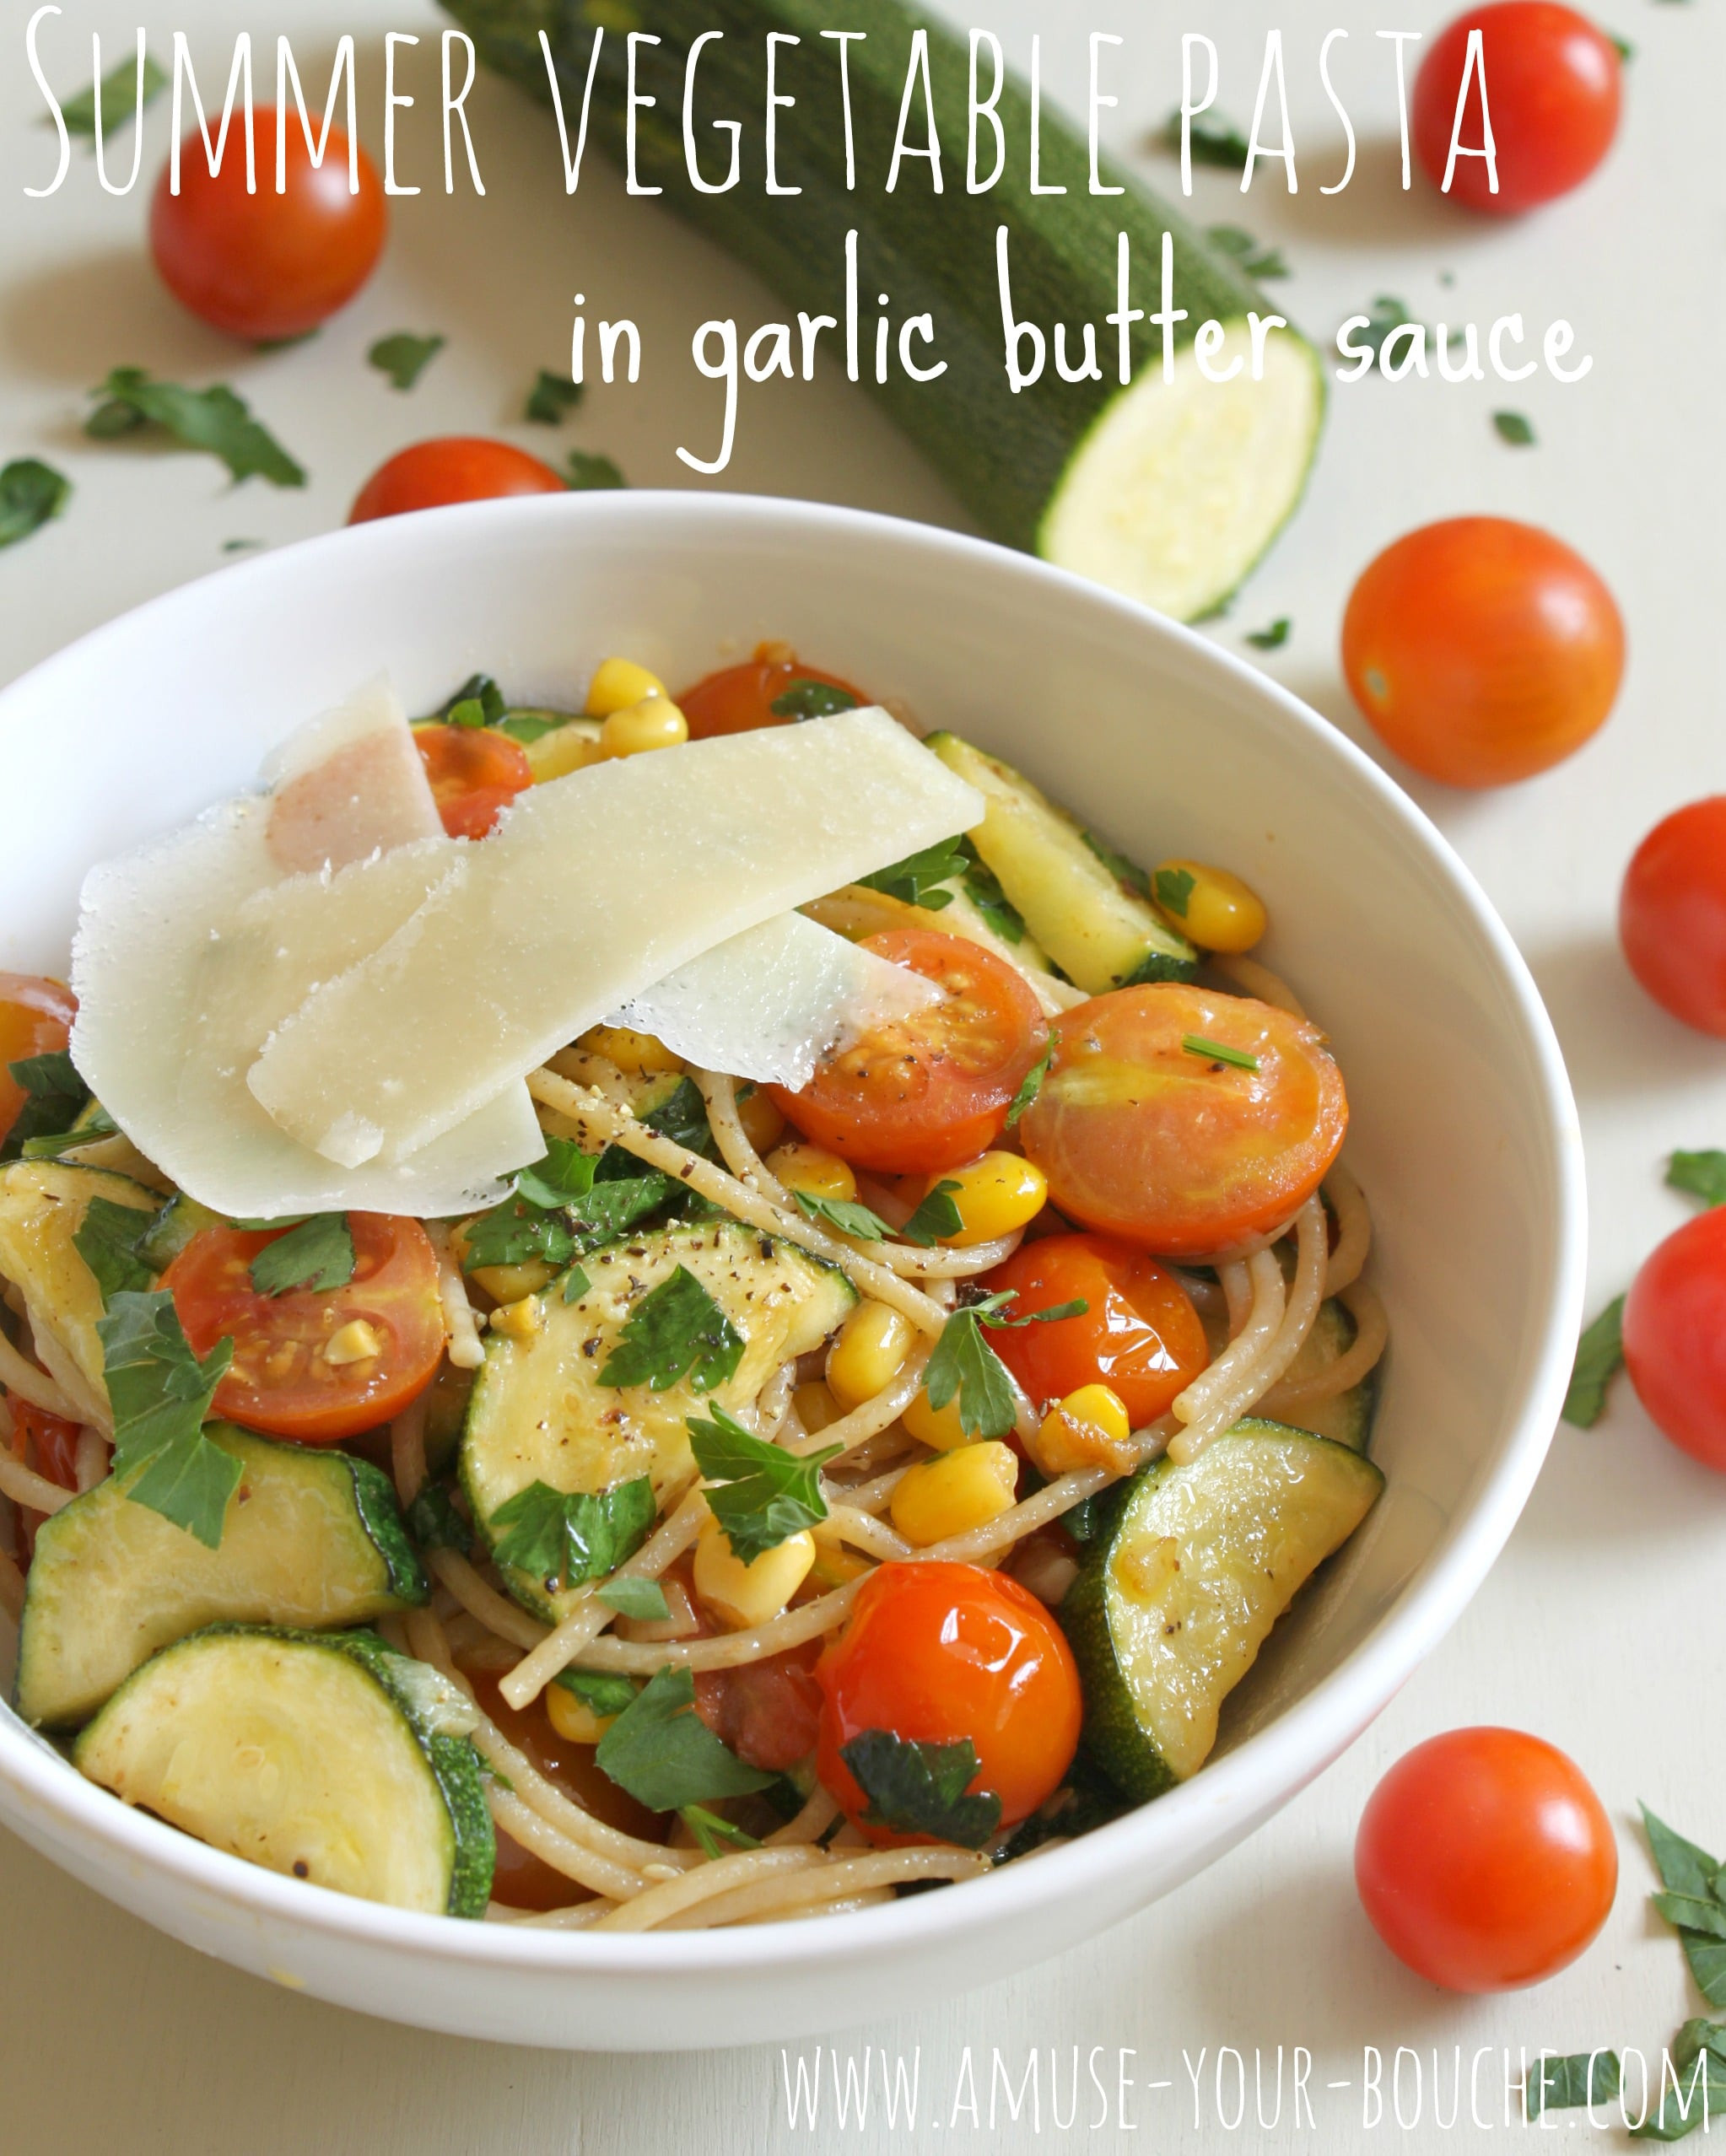 Summer Vegetarian Pasta Recipes  Summer ve able pasta in garlic butter sauce Amuse Your